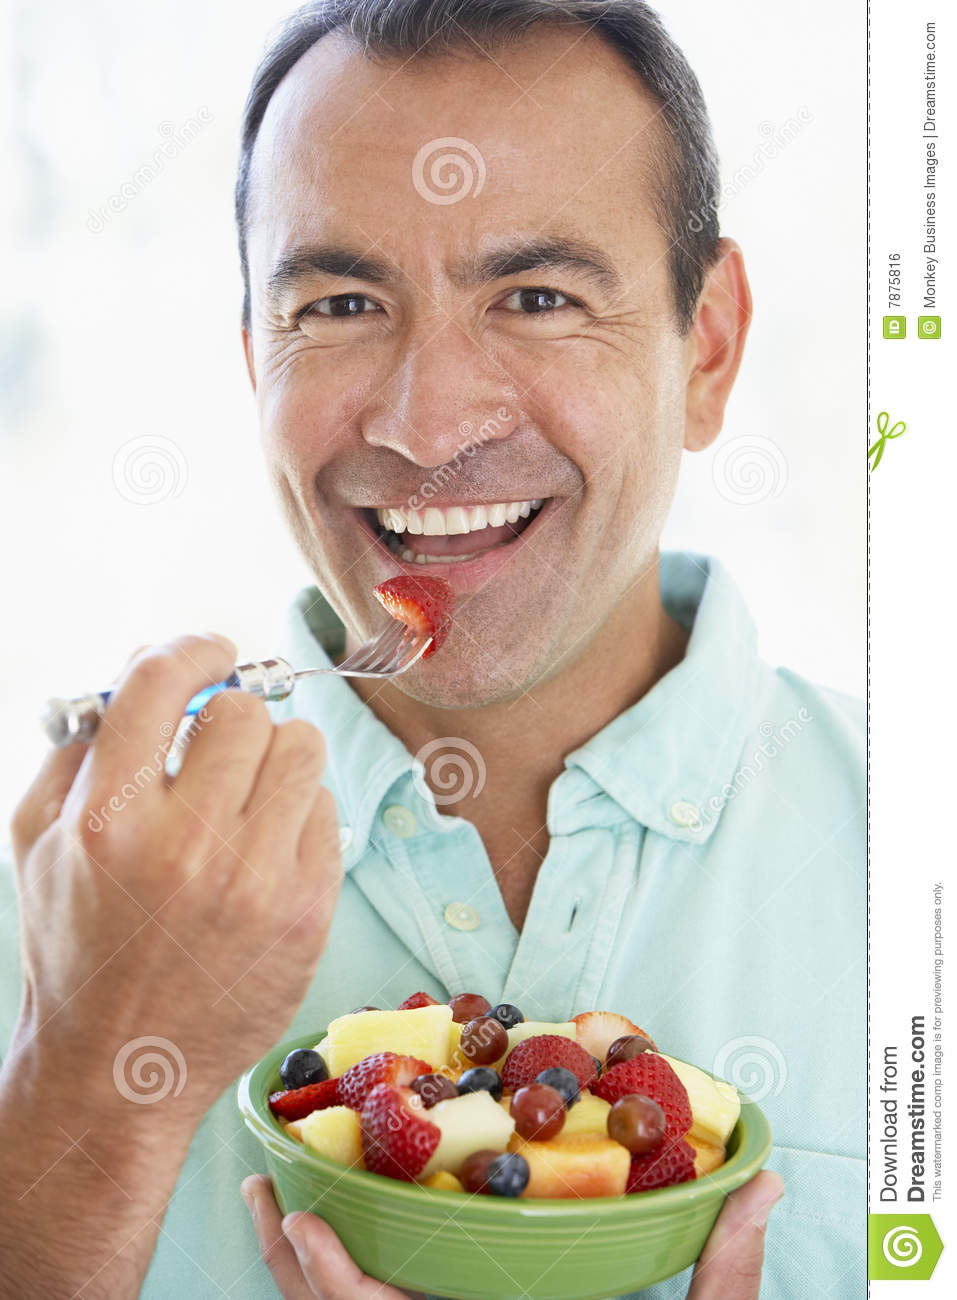 middle aged man eating fresh fruit salad 7875816 men laughing alone with salad